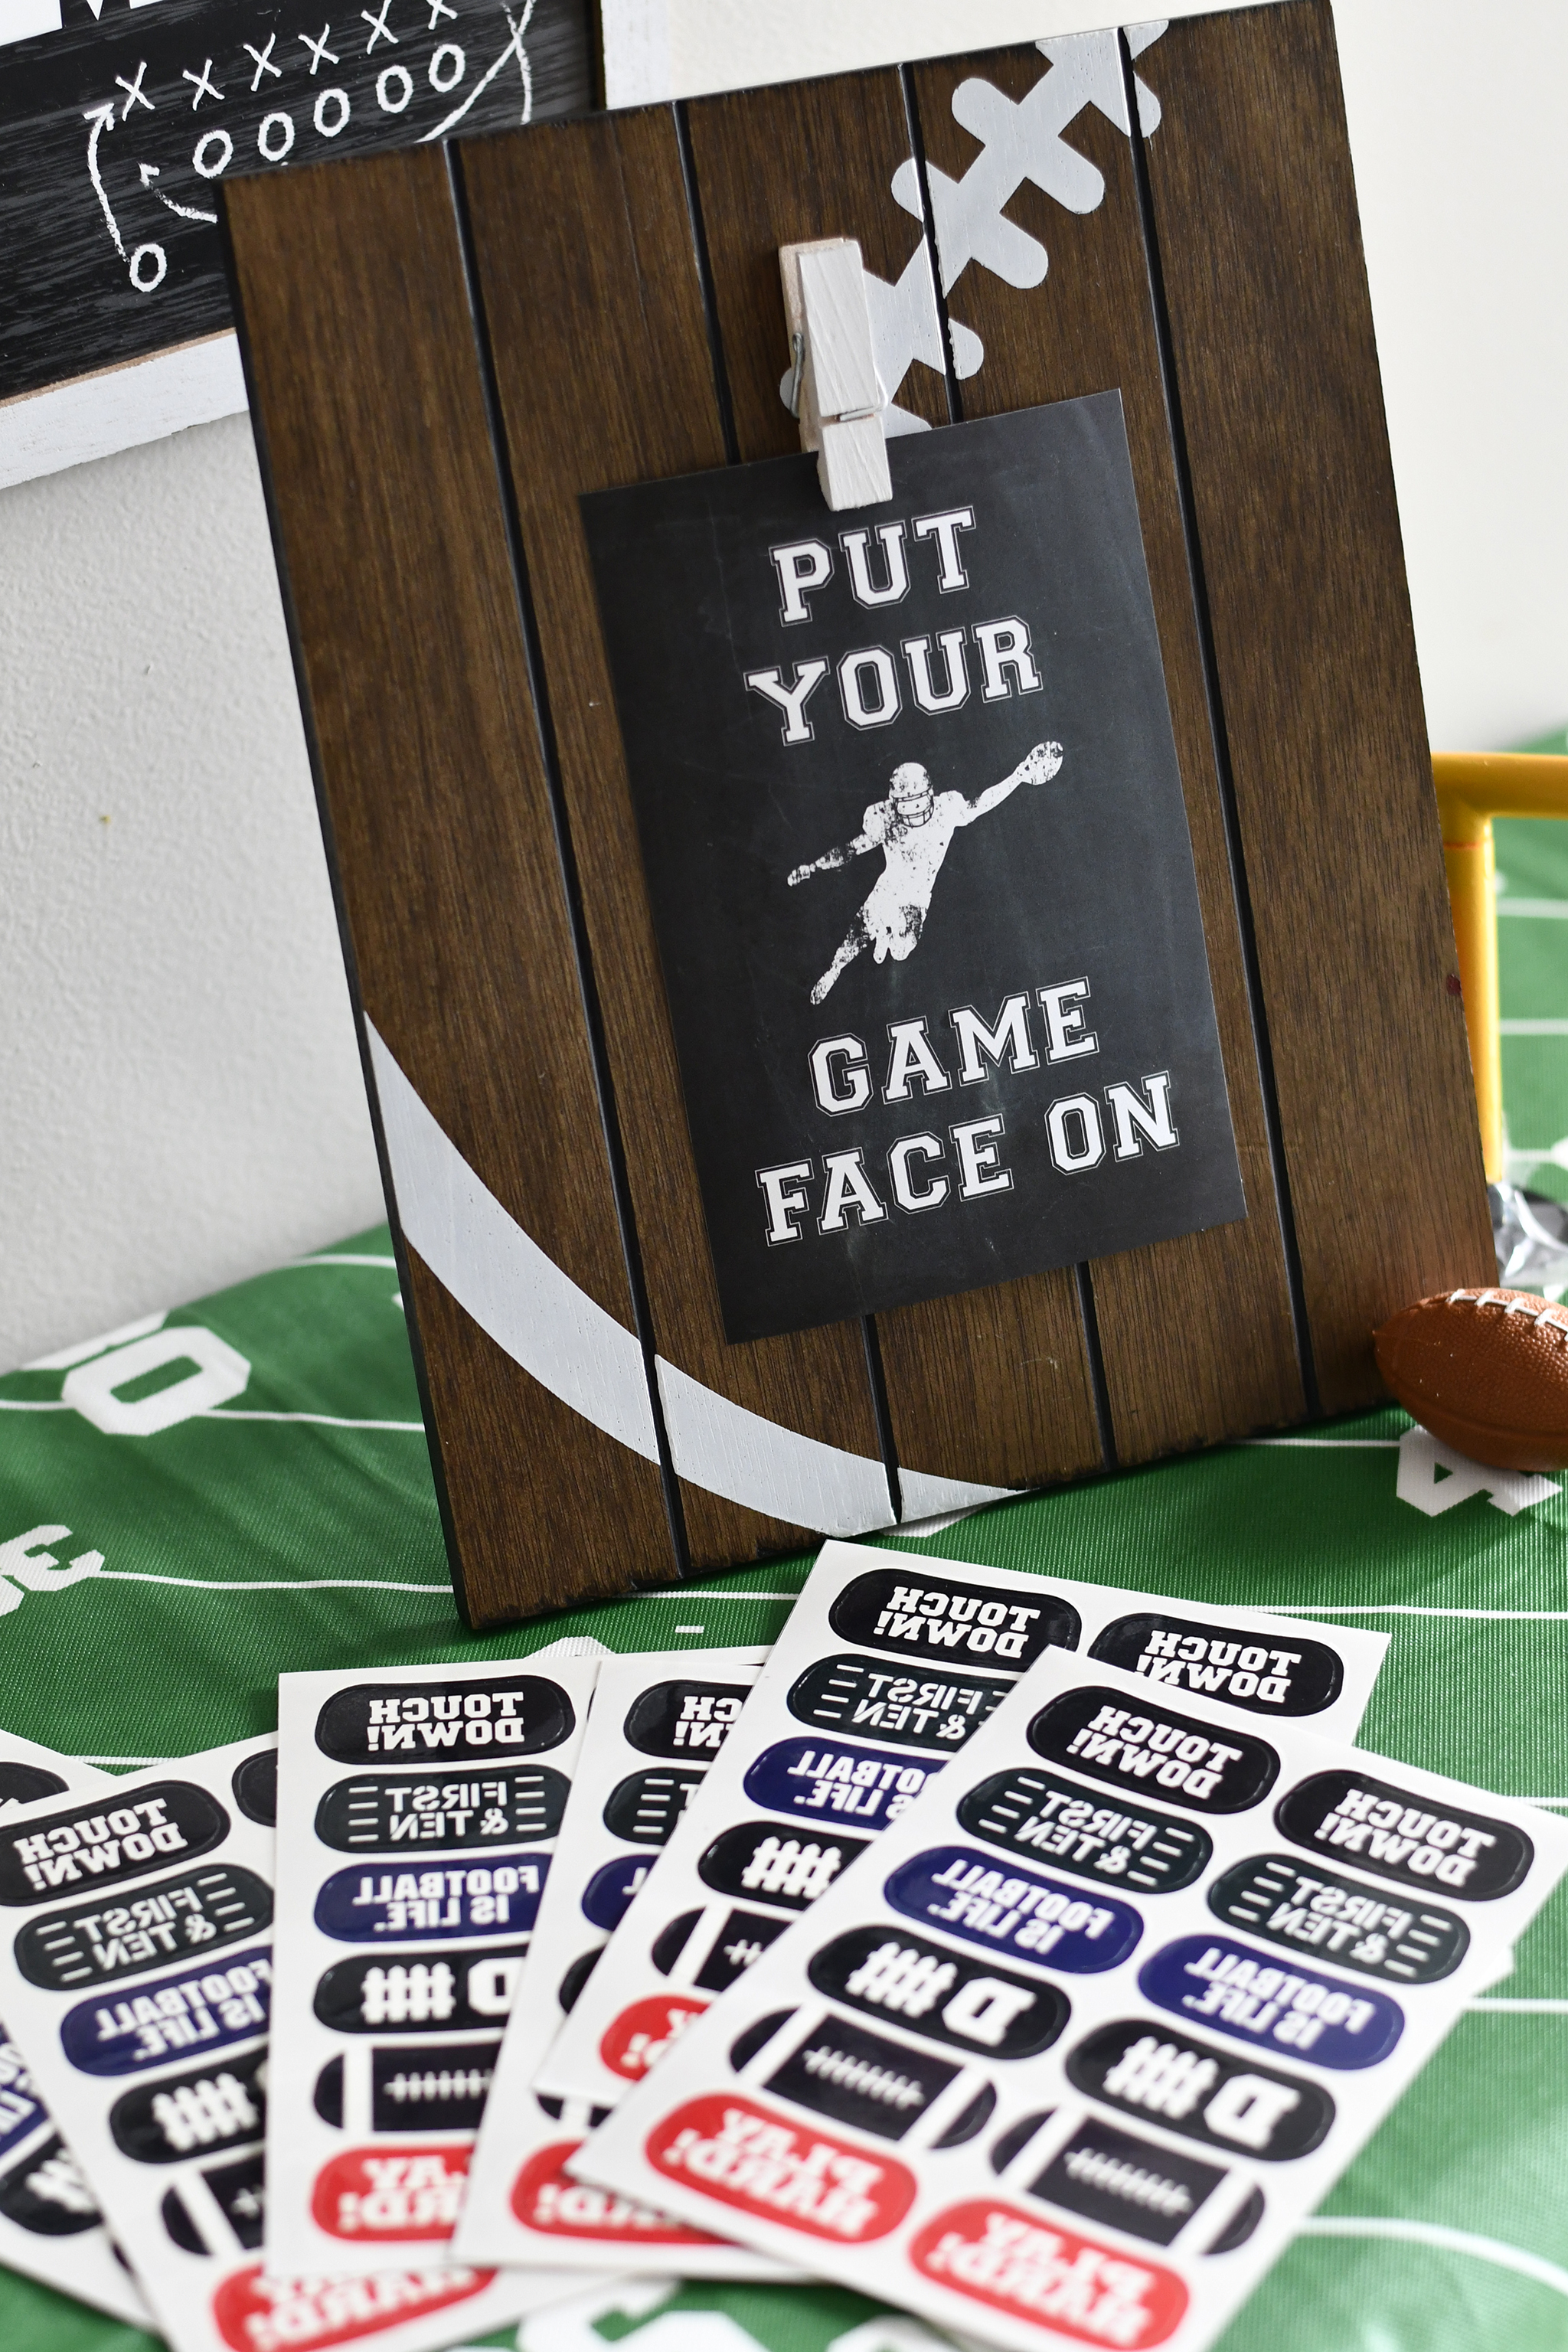 Put your Game Face On!